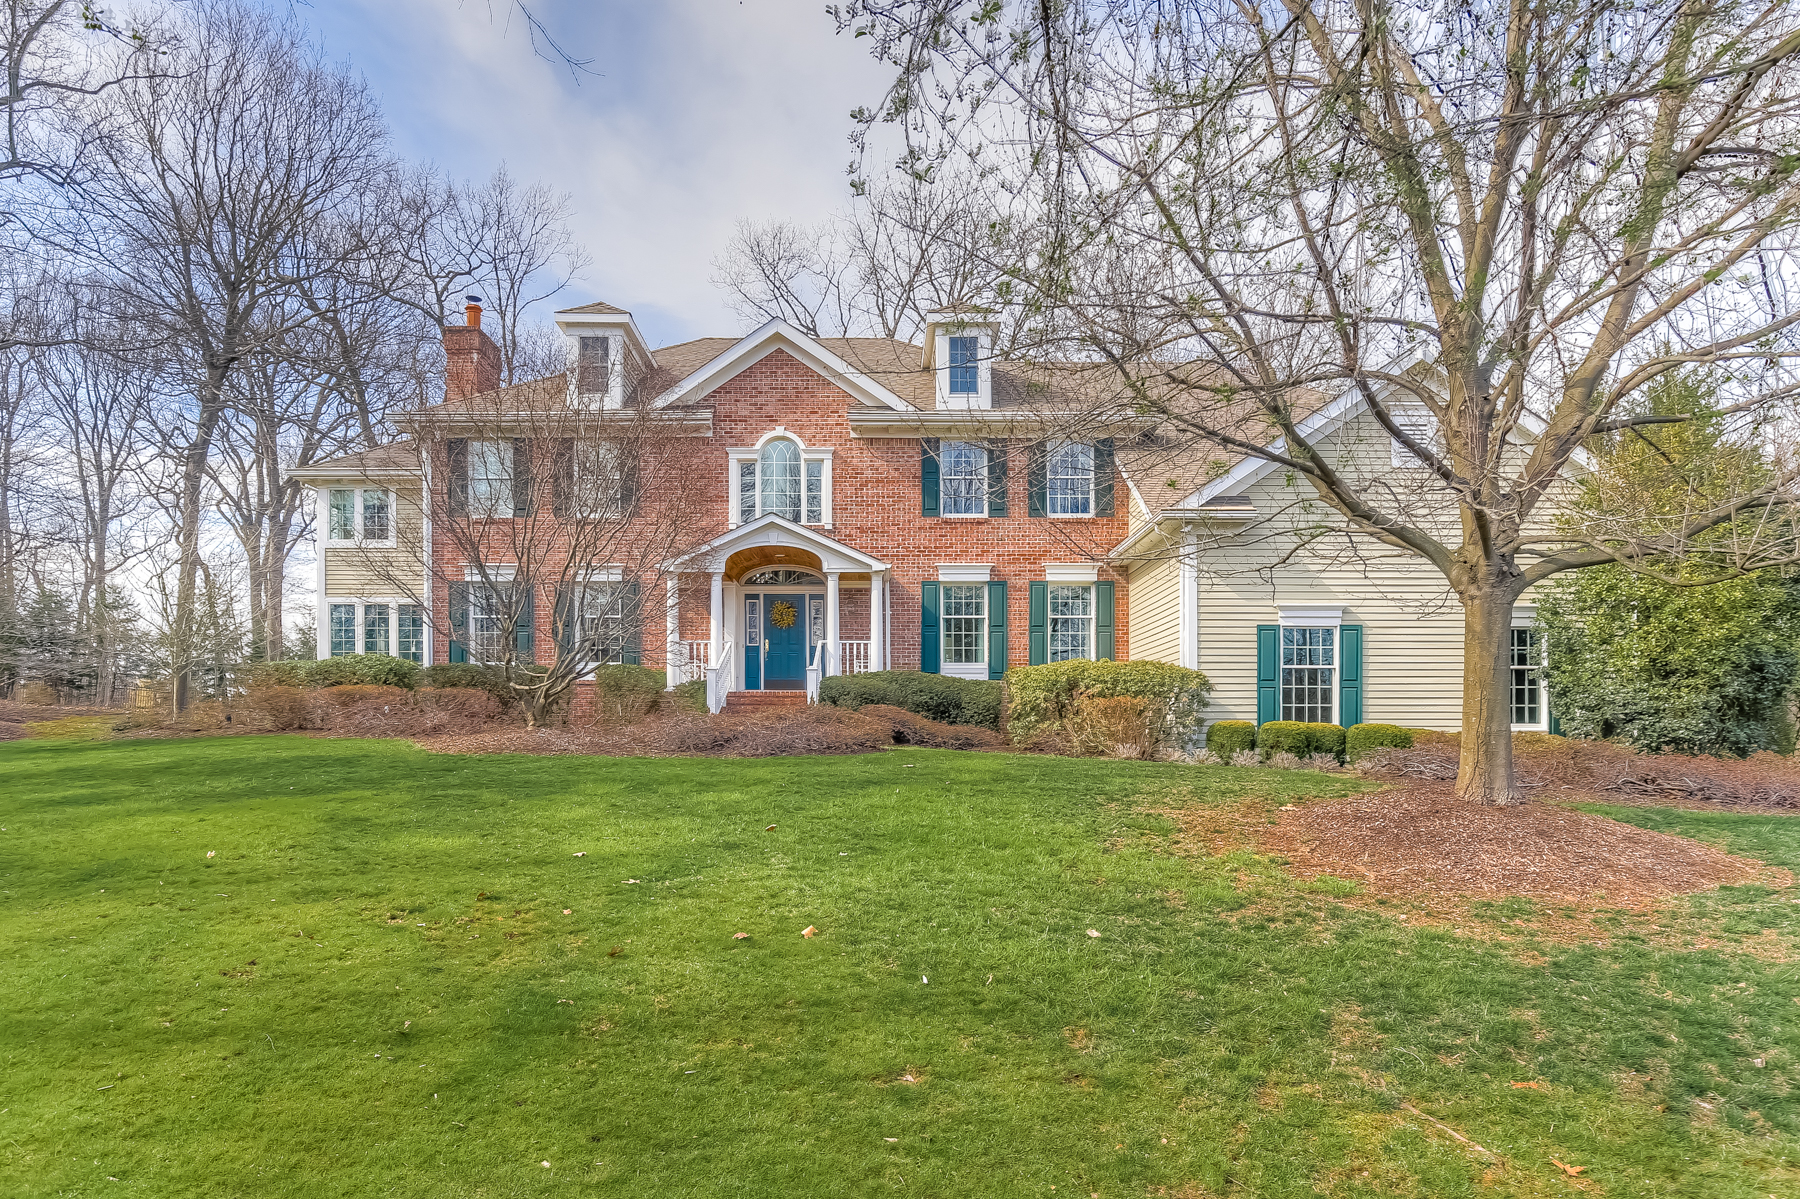 Single Family Home for Sale at Exceptional Value in Premier Location 94 Emily Road Basking Ridge, New Jersey, 07920 United States